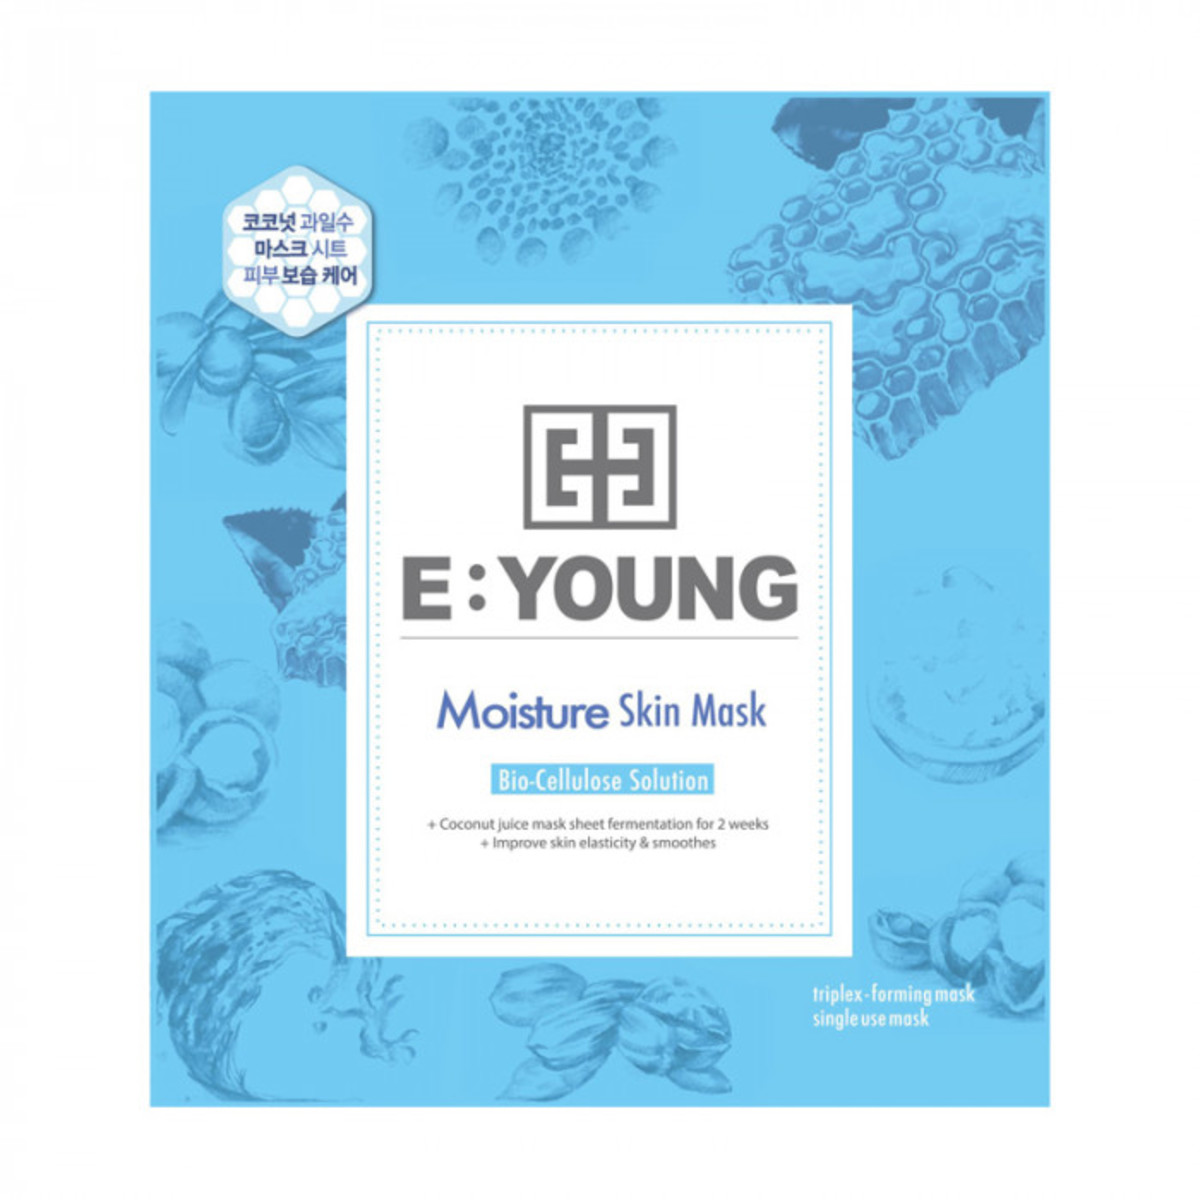 E:YOUNG Moisture Skin Mask (5pcs)  (Expiry Date: 08/2019)